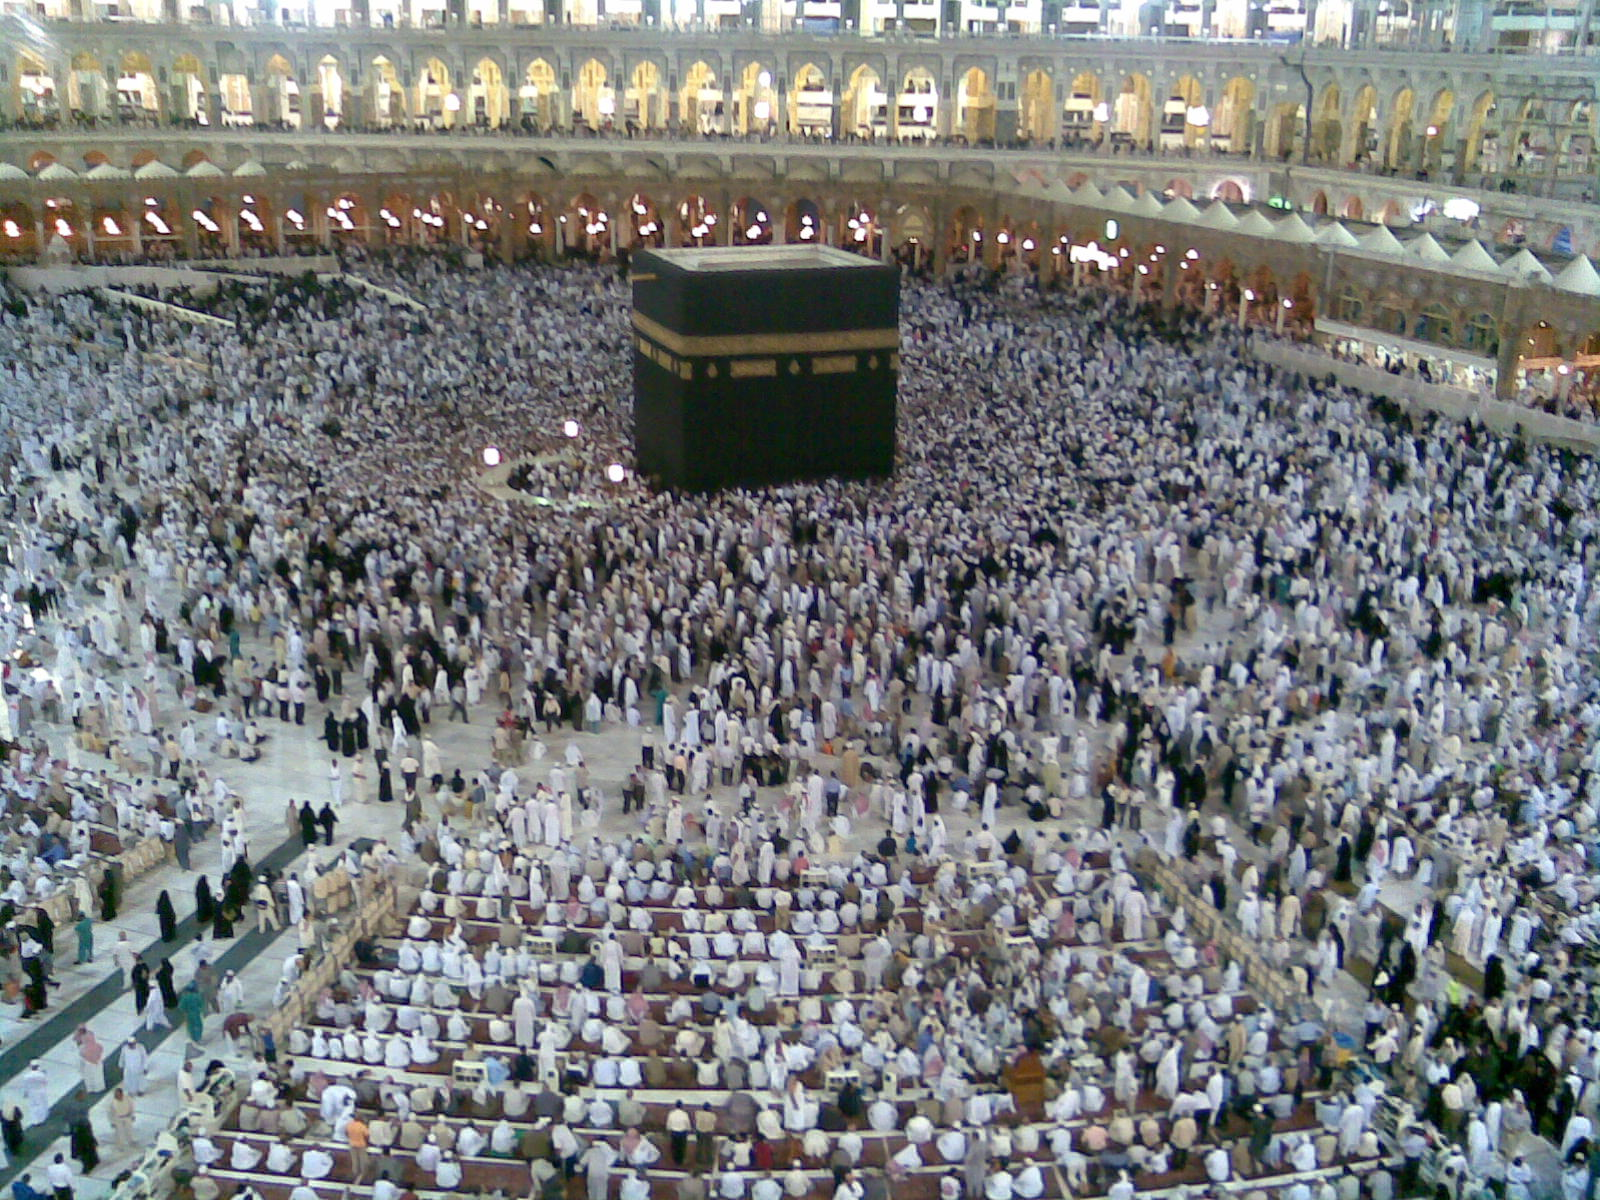 Prayer in the msjed haram during the Umrah